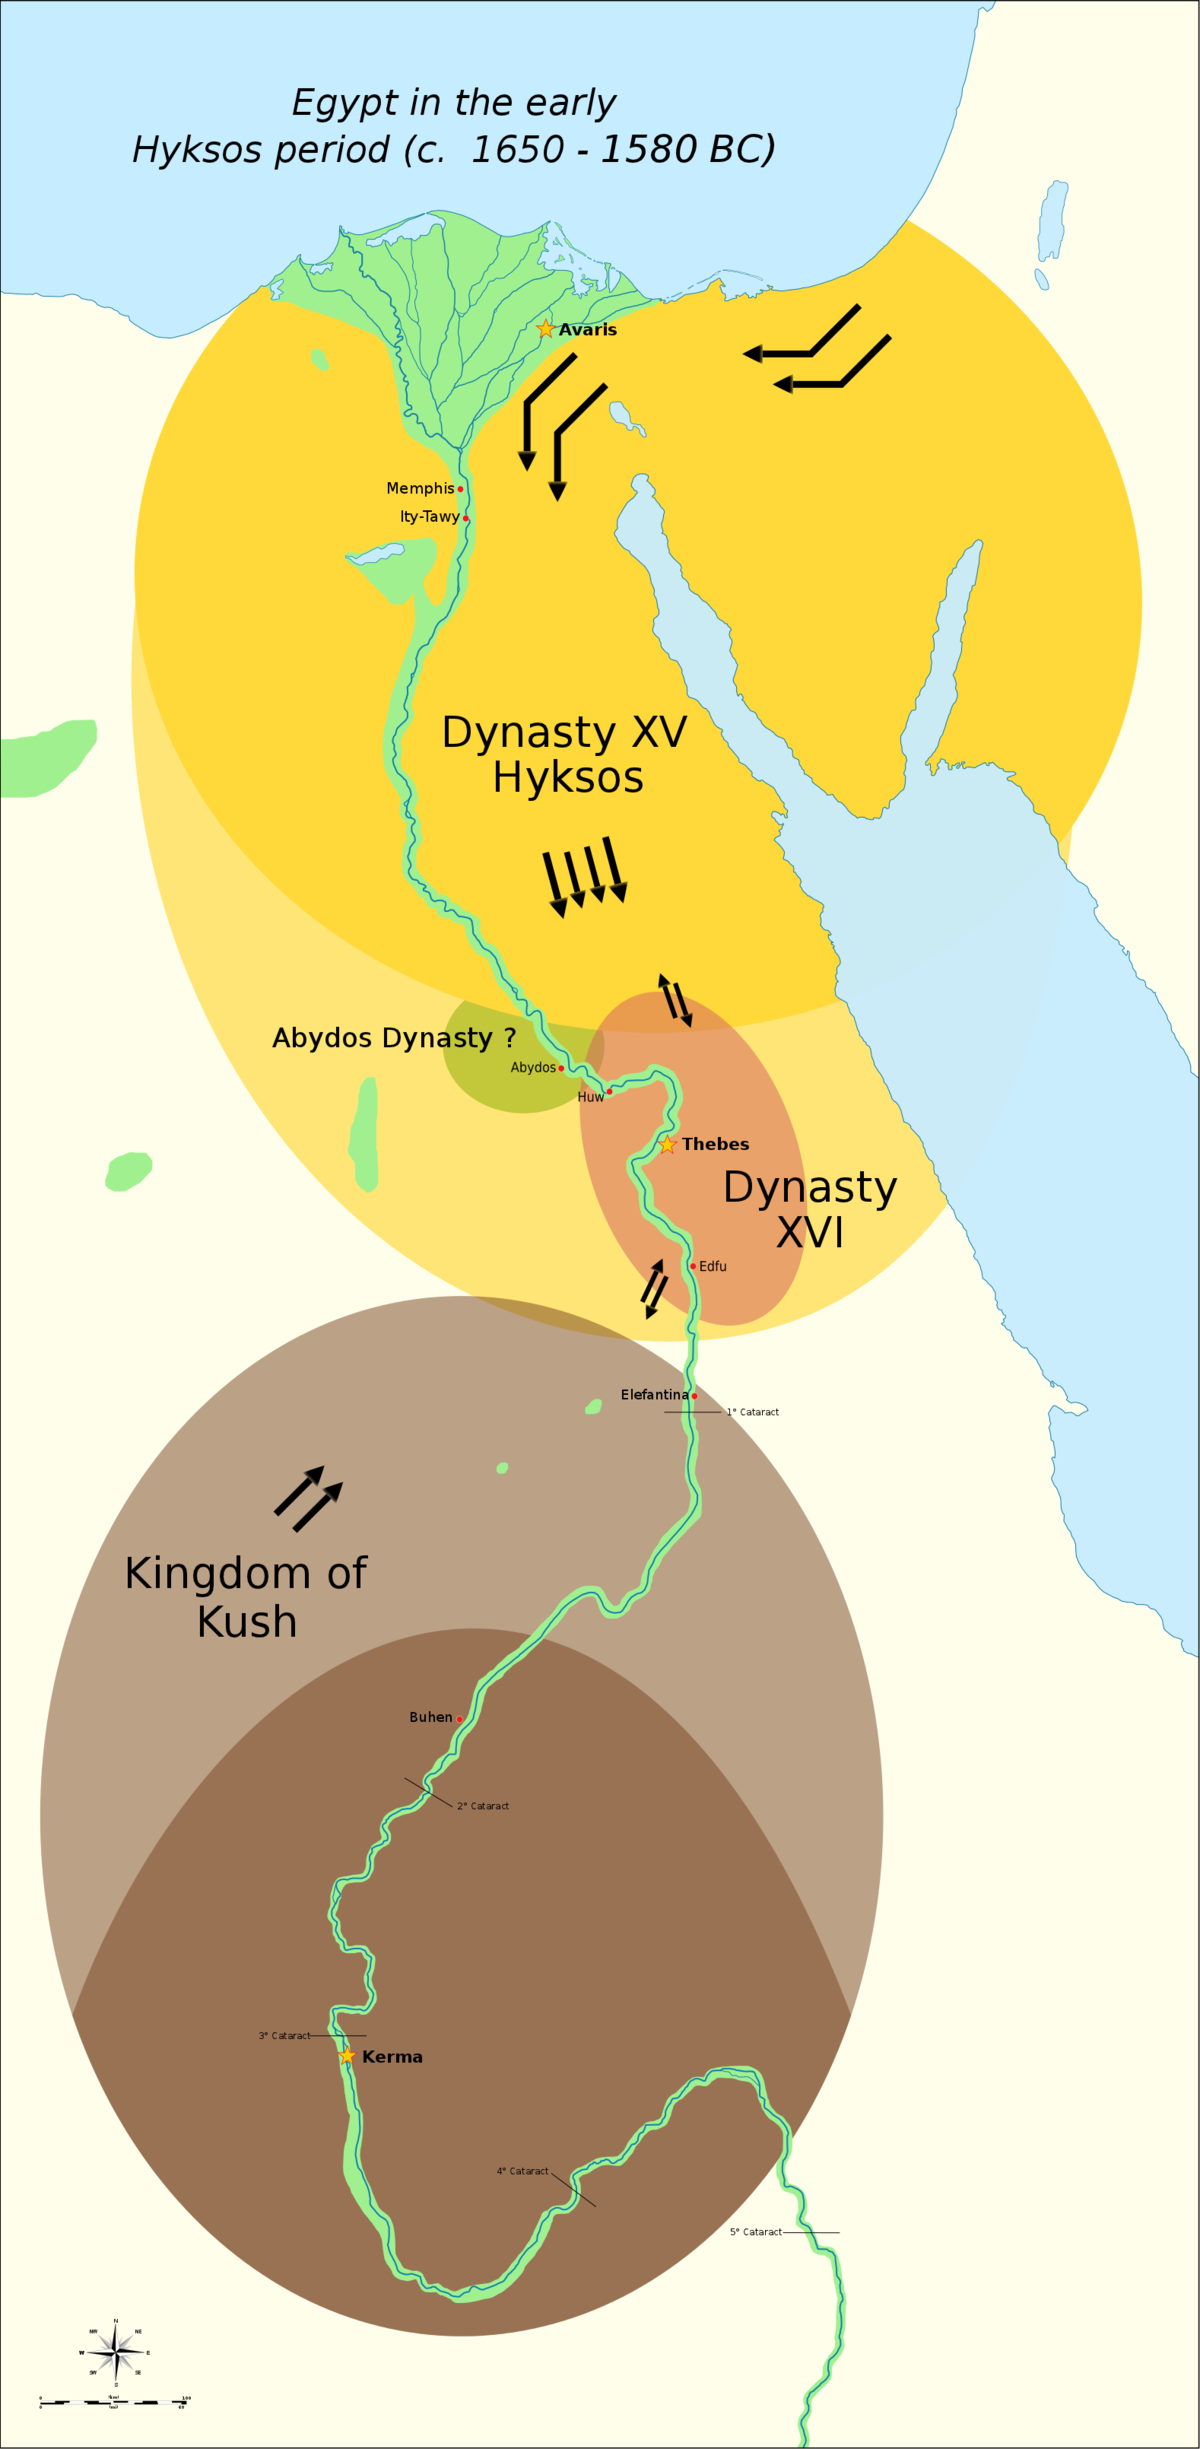 Second Intermediate Period Of Egypt Wikipedia - Map of egypt during the new kingdom